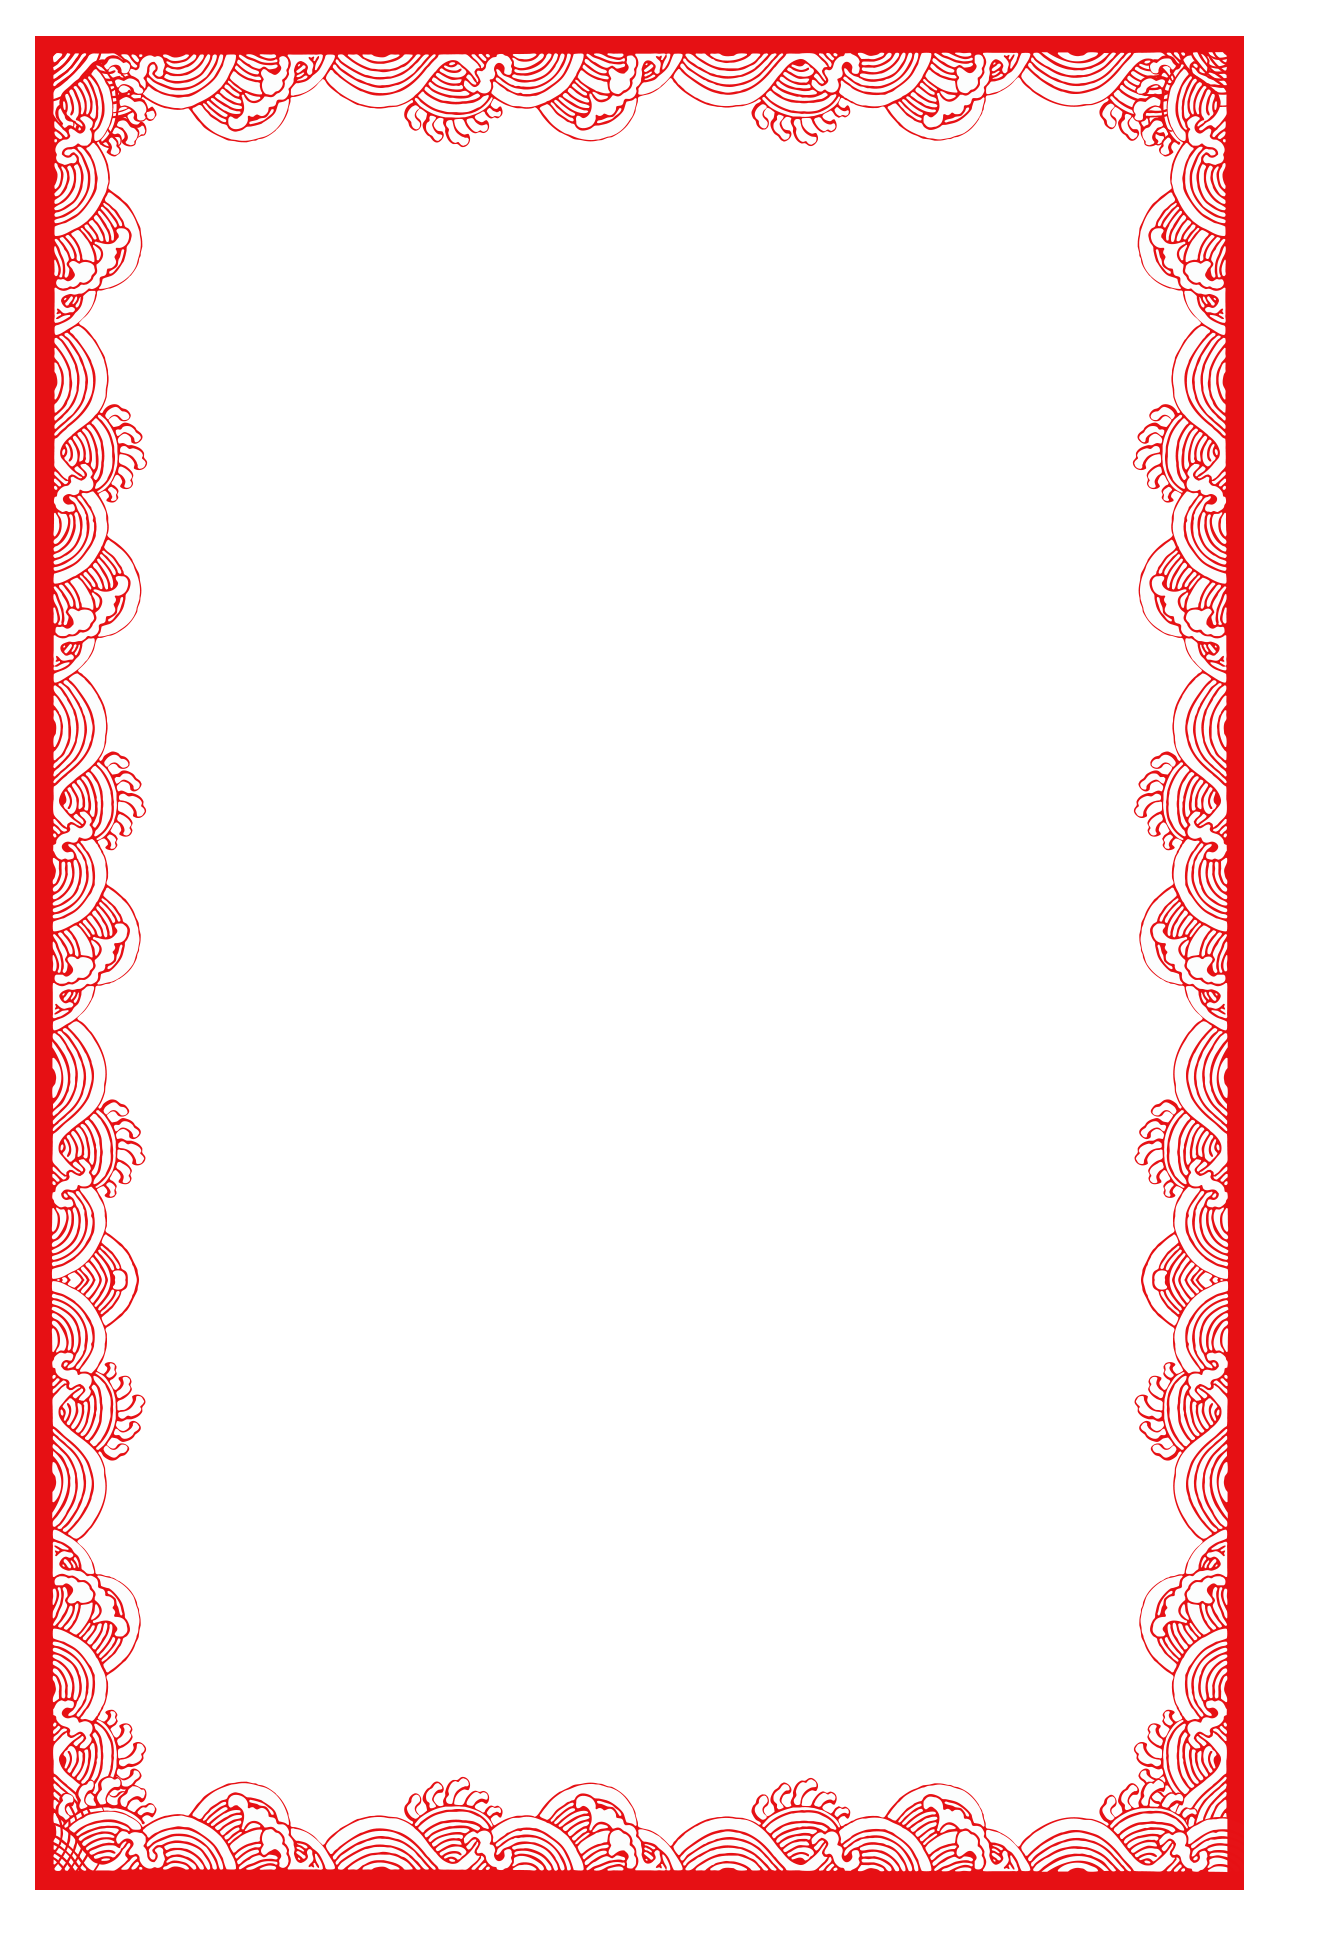 Chinese border png. Download copyright clip art